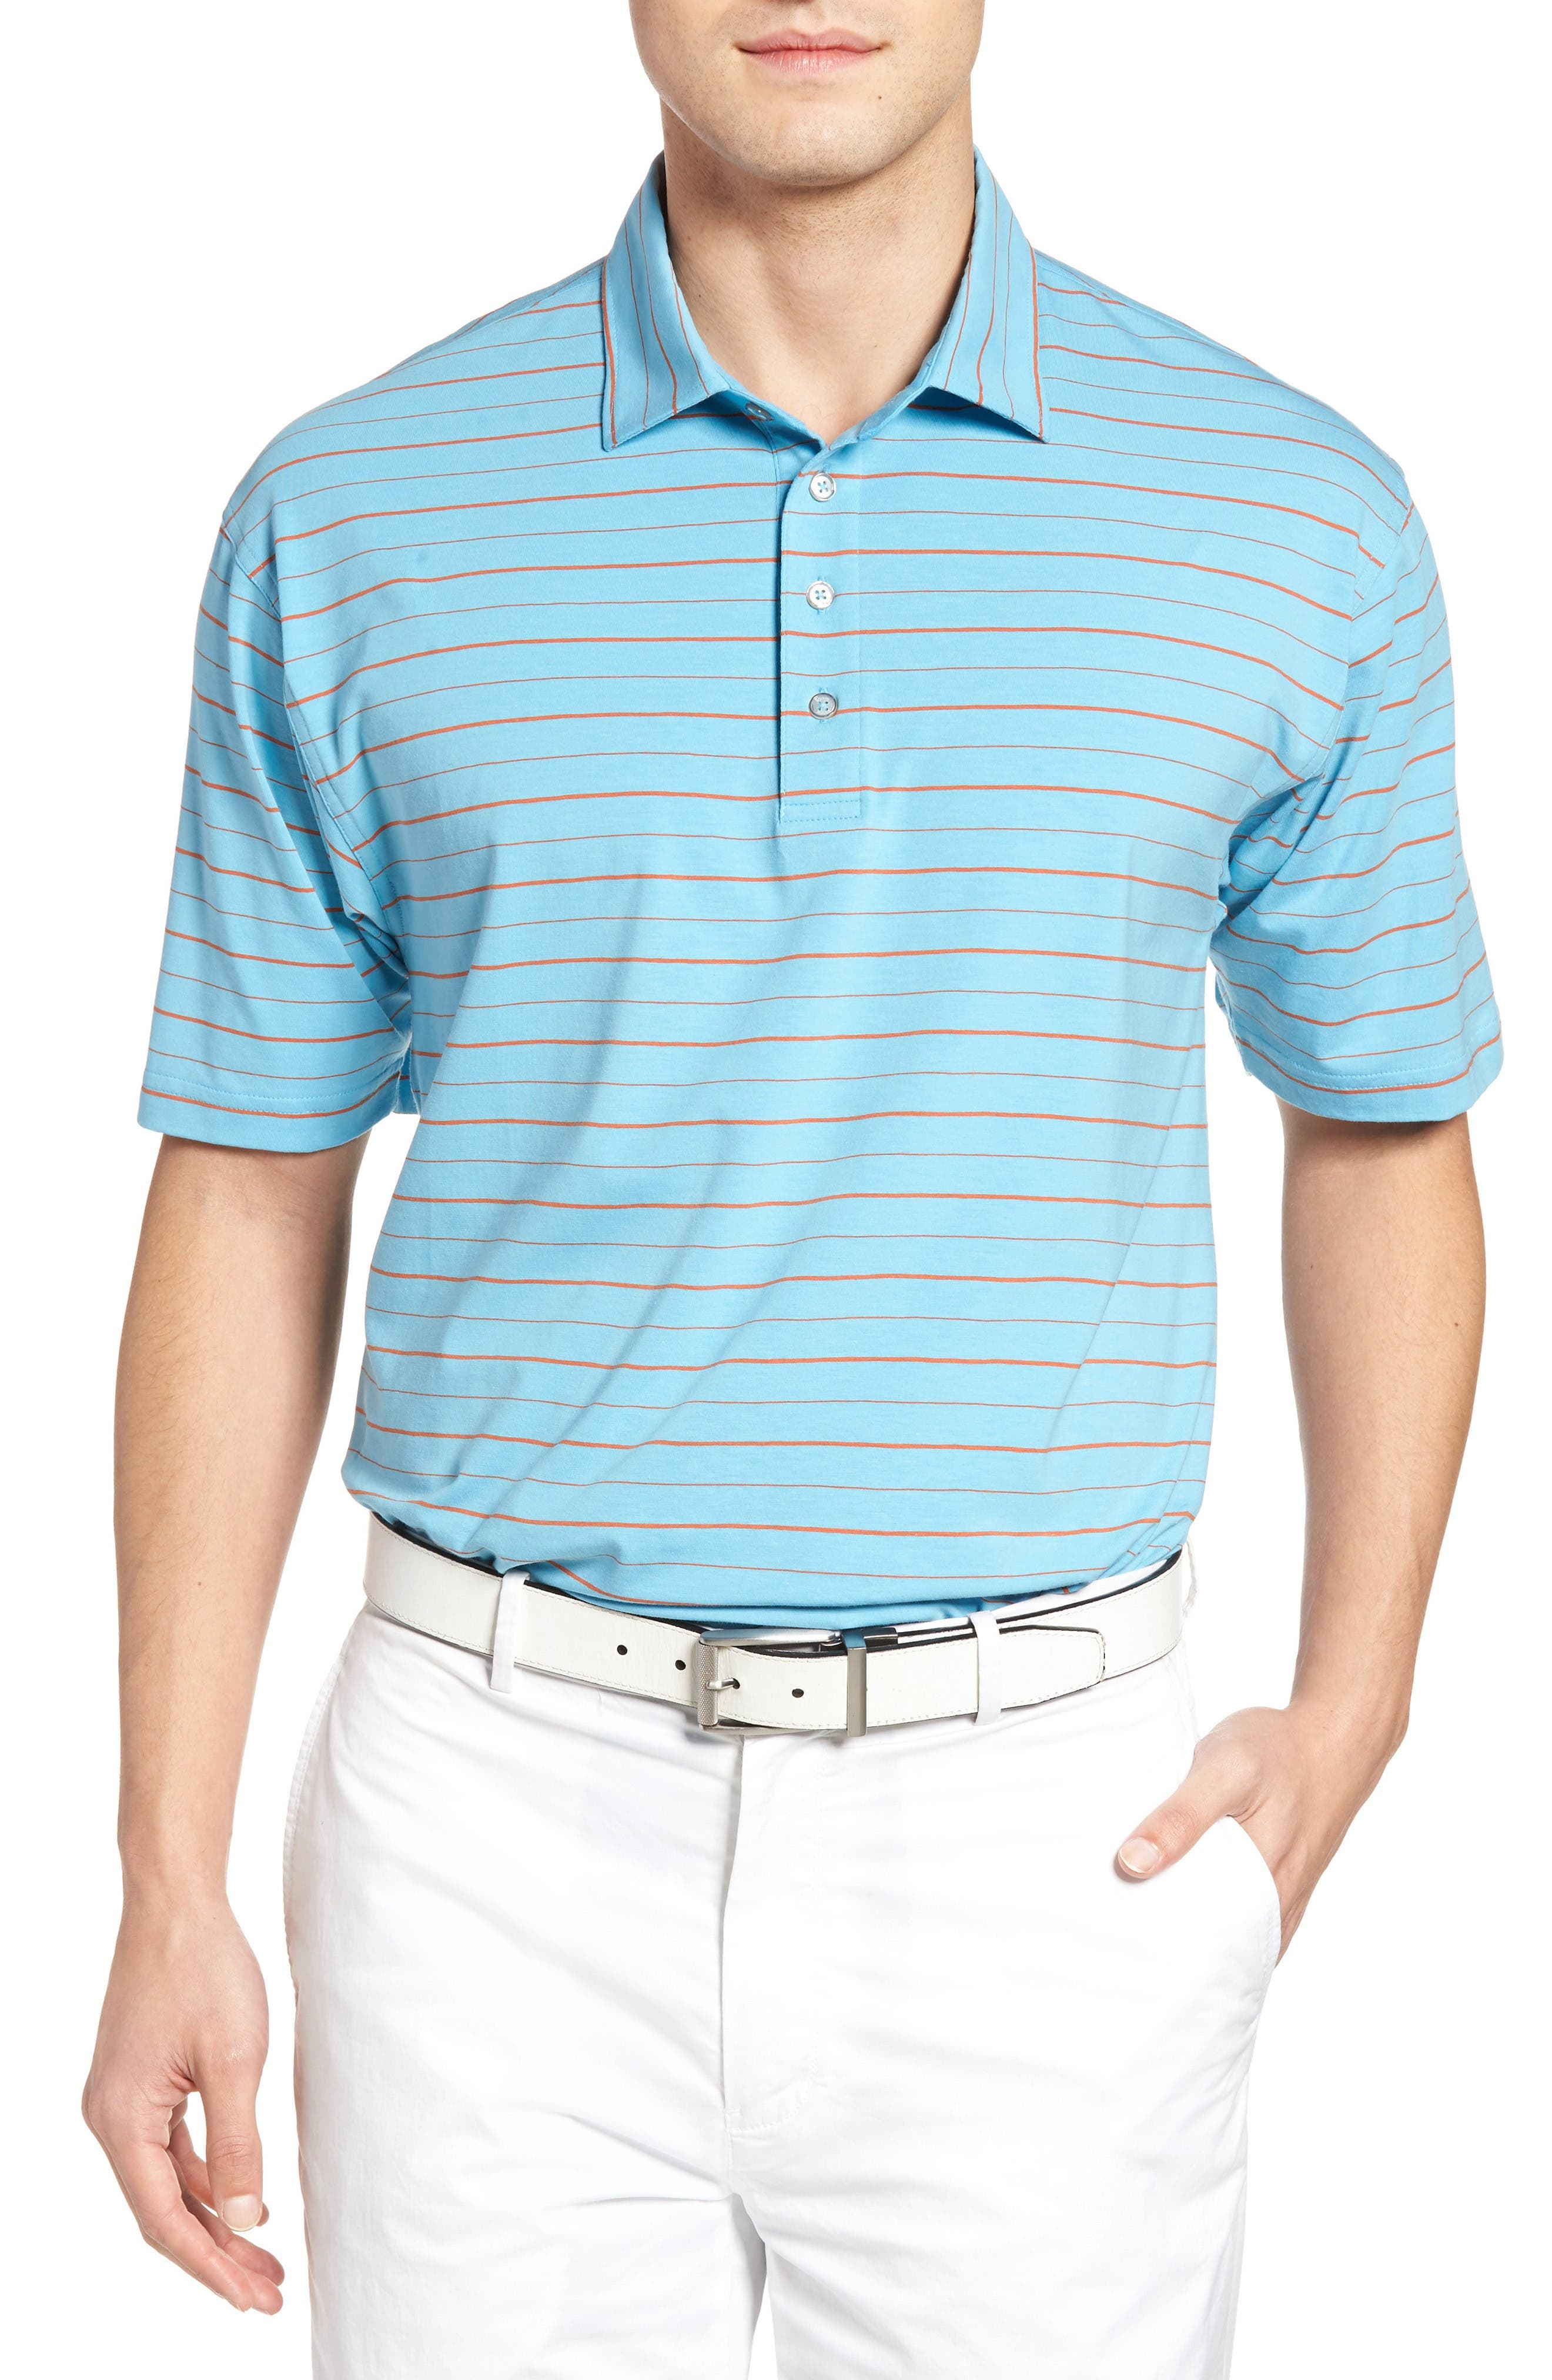 BOBBY JONES Liquid Cotton Stretch Jersey Golf Polo